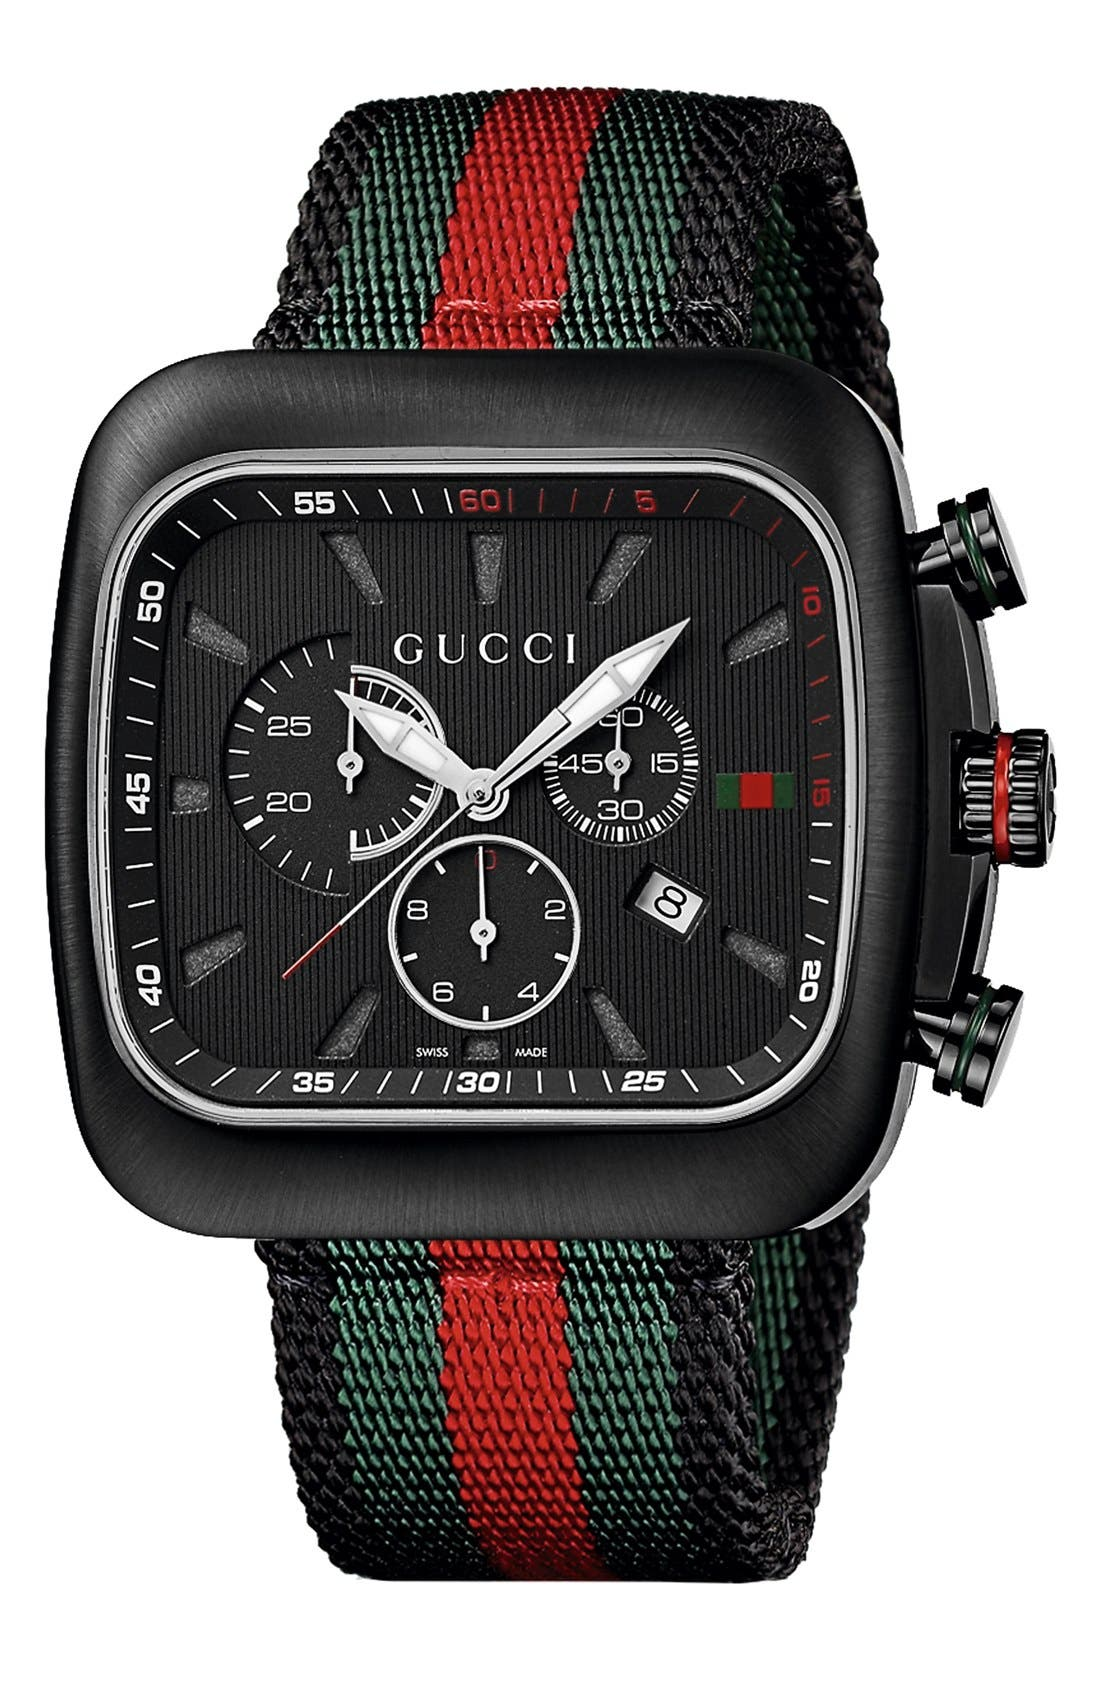 Main Image - Gucci 'Coupé' Chronograph Nylon Strap Watch, 44mm